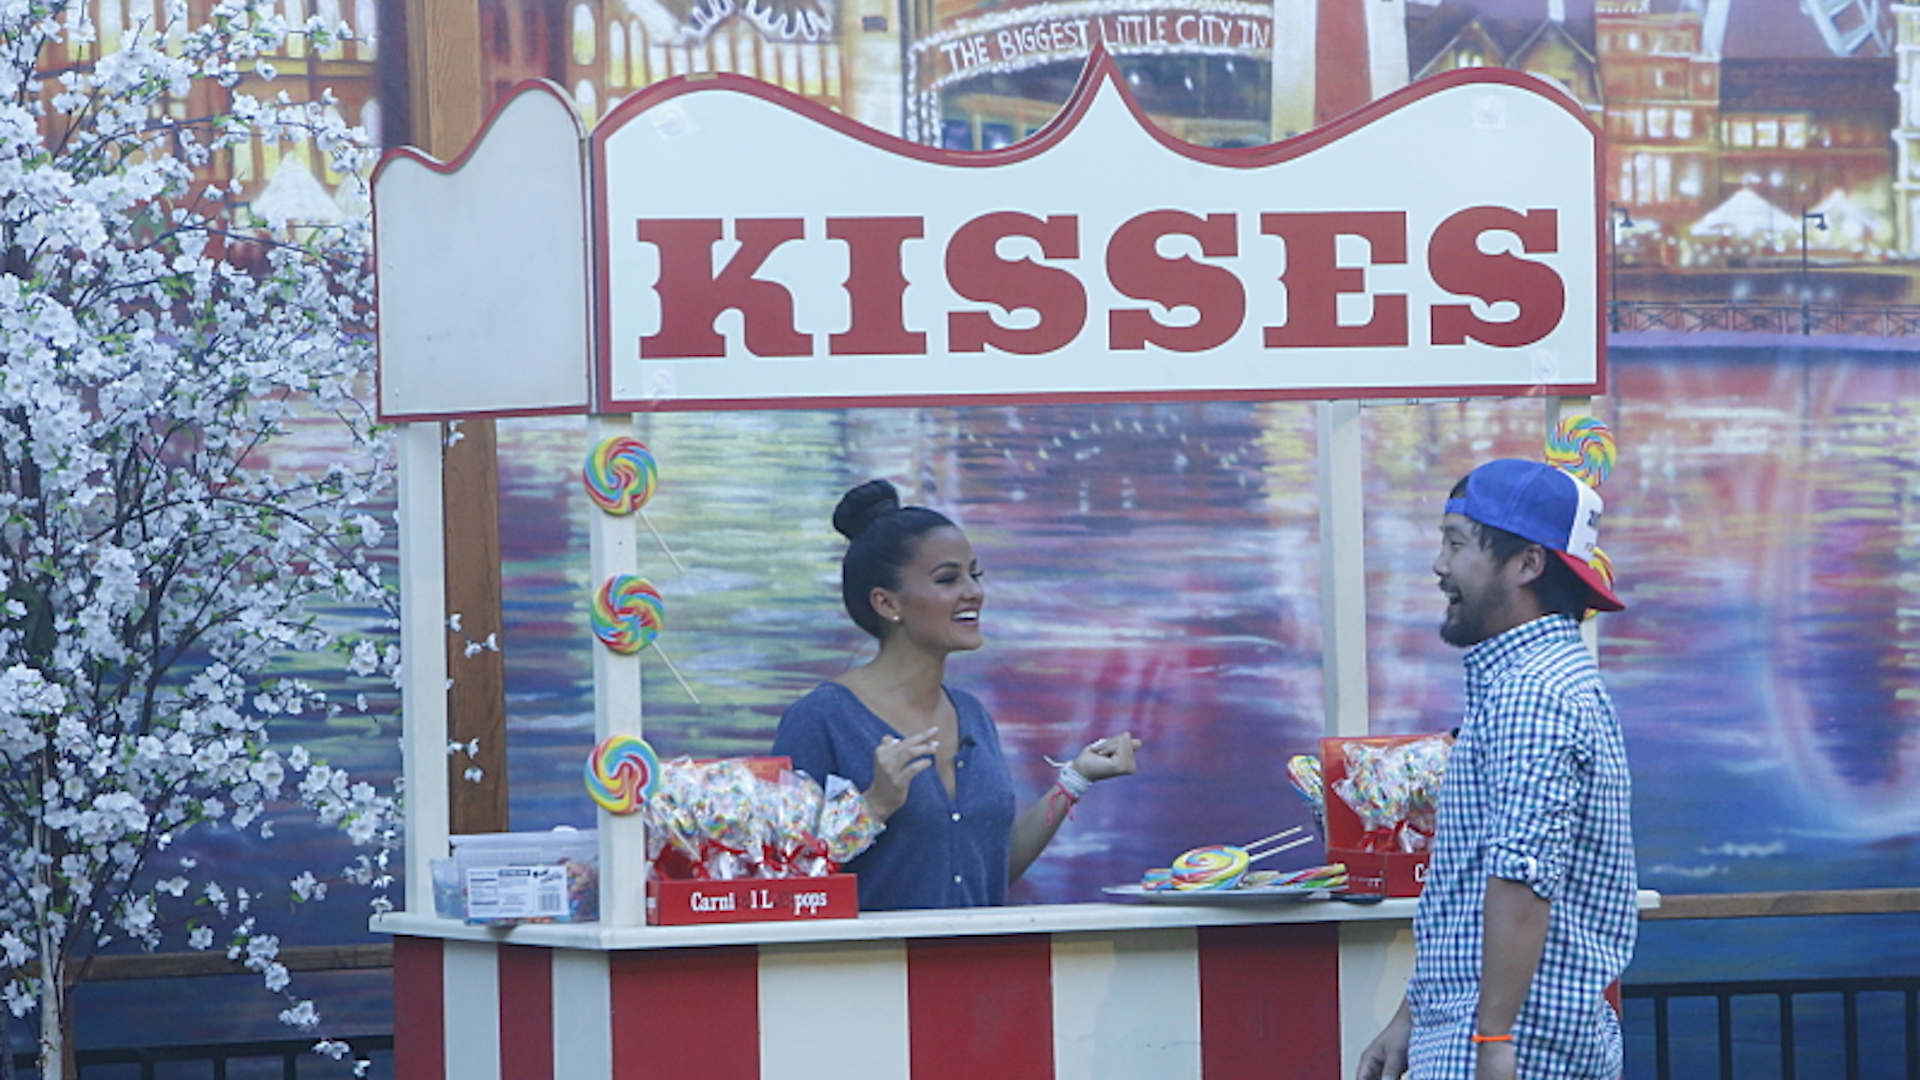 James and Natalie (Big Brother 18)